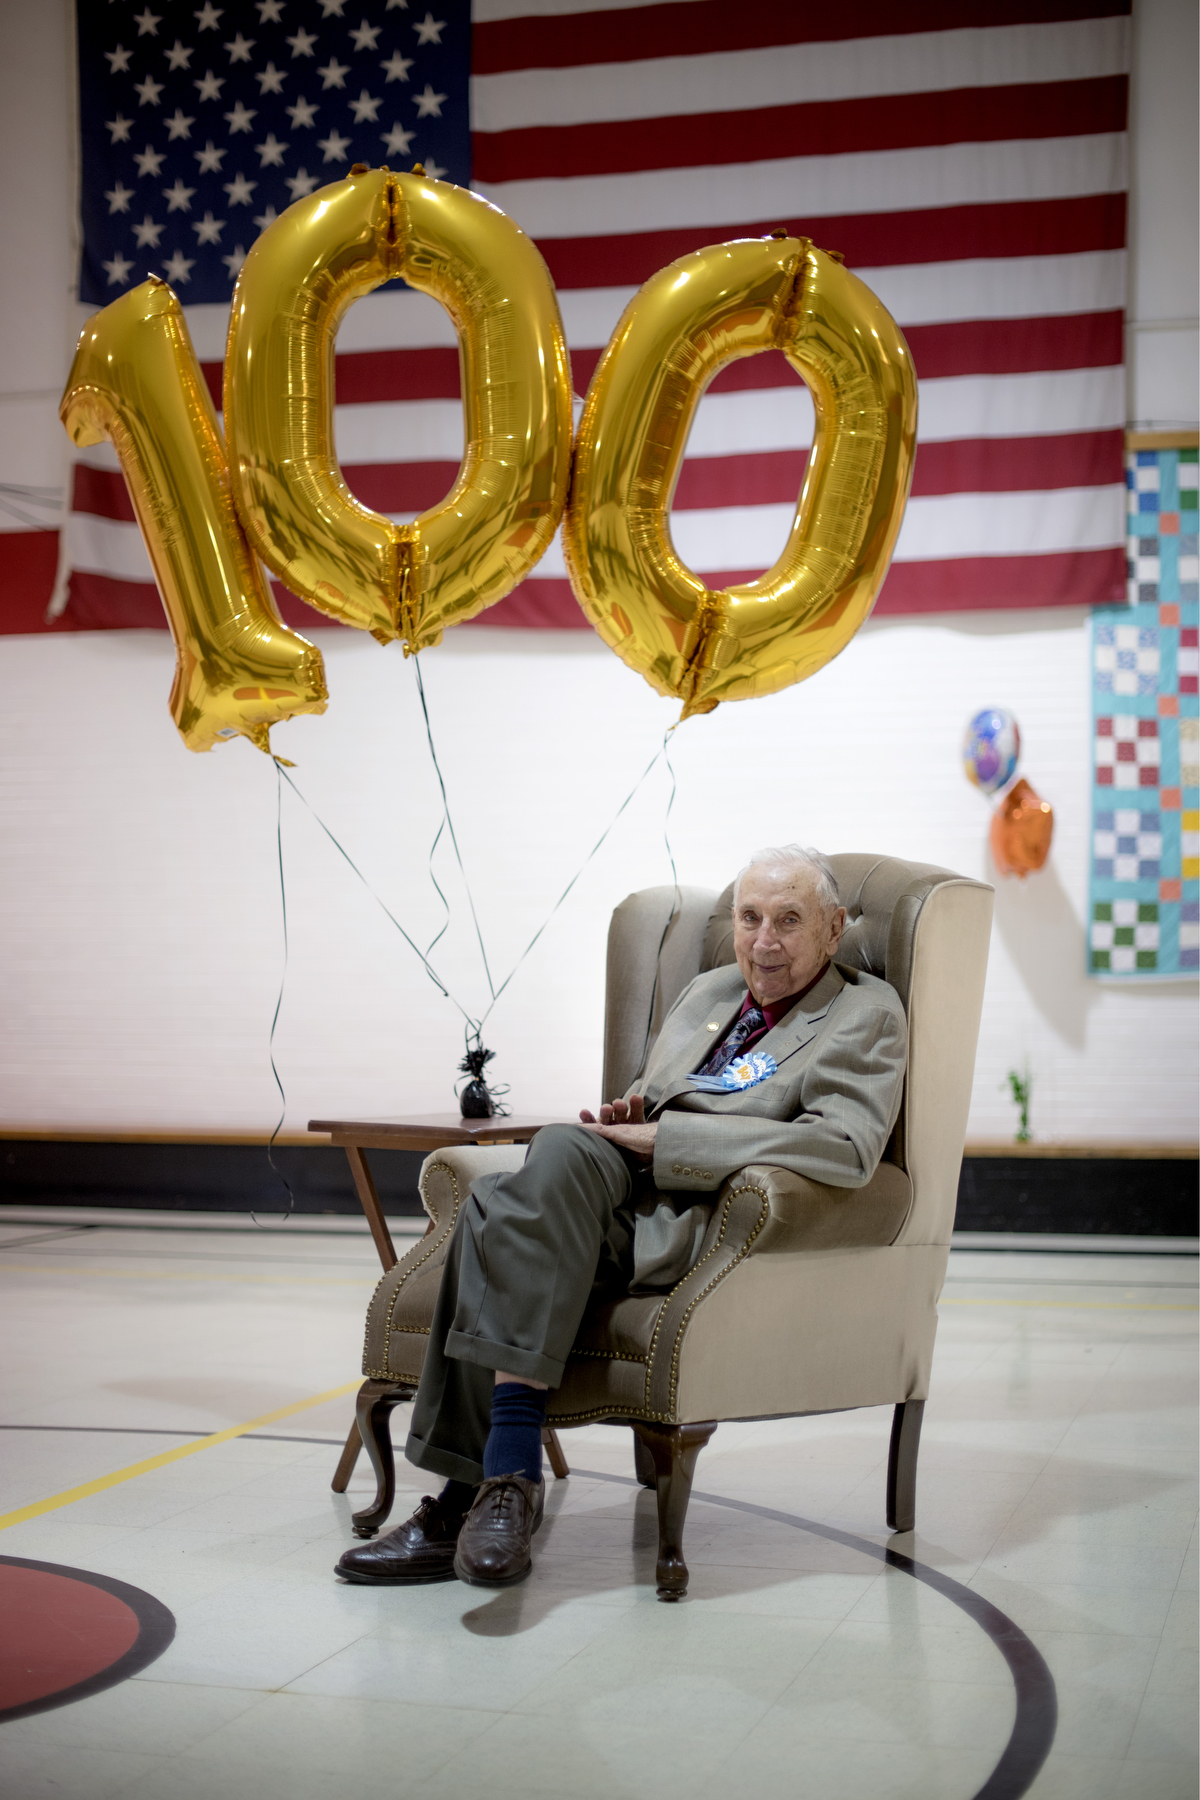 Fred Colburn at his 100th birthday party at the Shade Community Center in Shade, Ohio on April 22, 2017. The gymnasium he sits in was named after him.